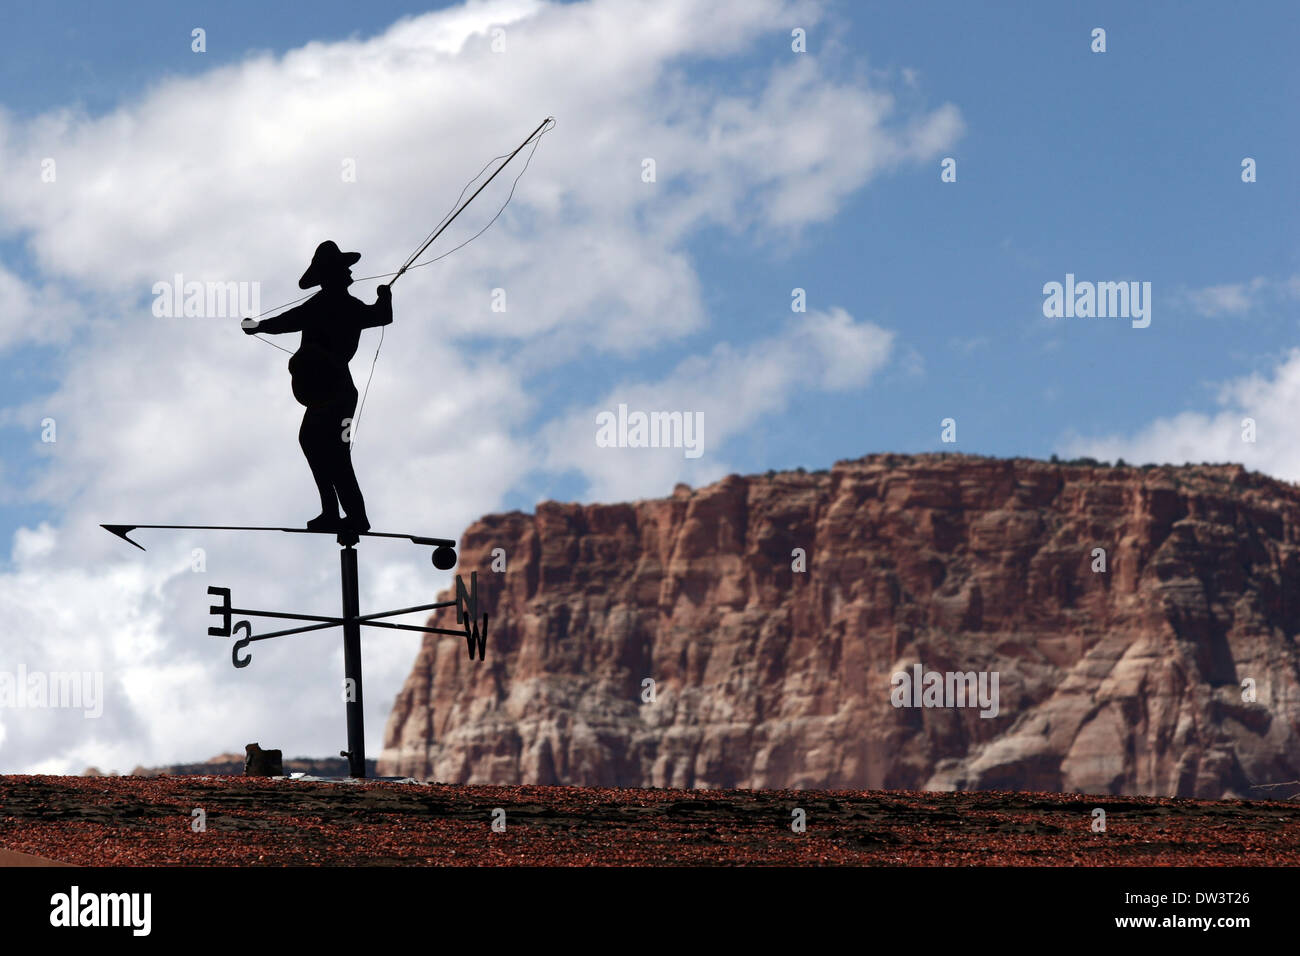 Wind signal fisherman on roof with rocks and sky on the background - Stock Image